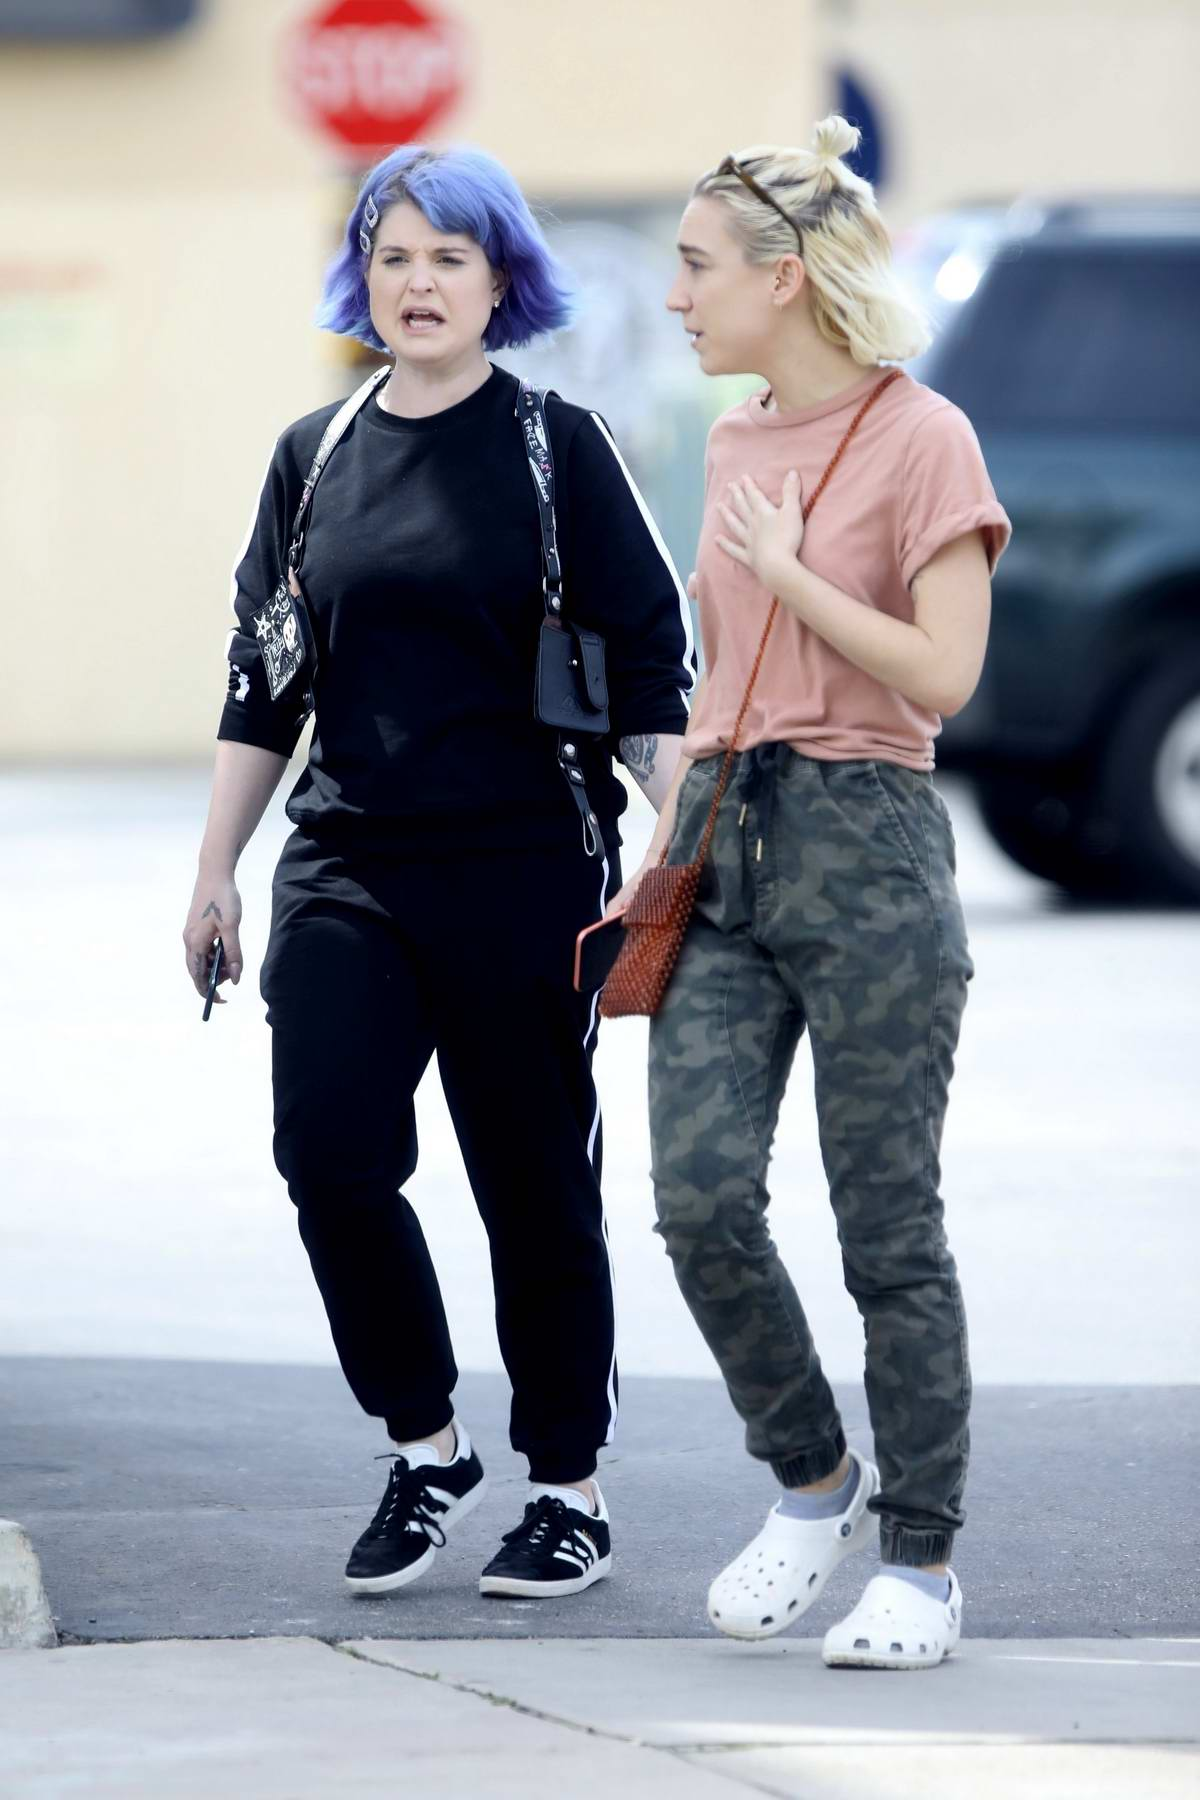 Kelly Osbourne steps out with her brother's girlfriend for some take-out lunch in Los Angeles